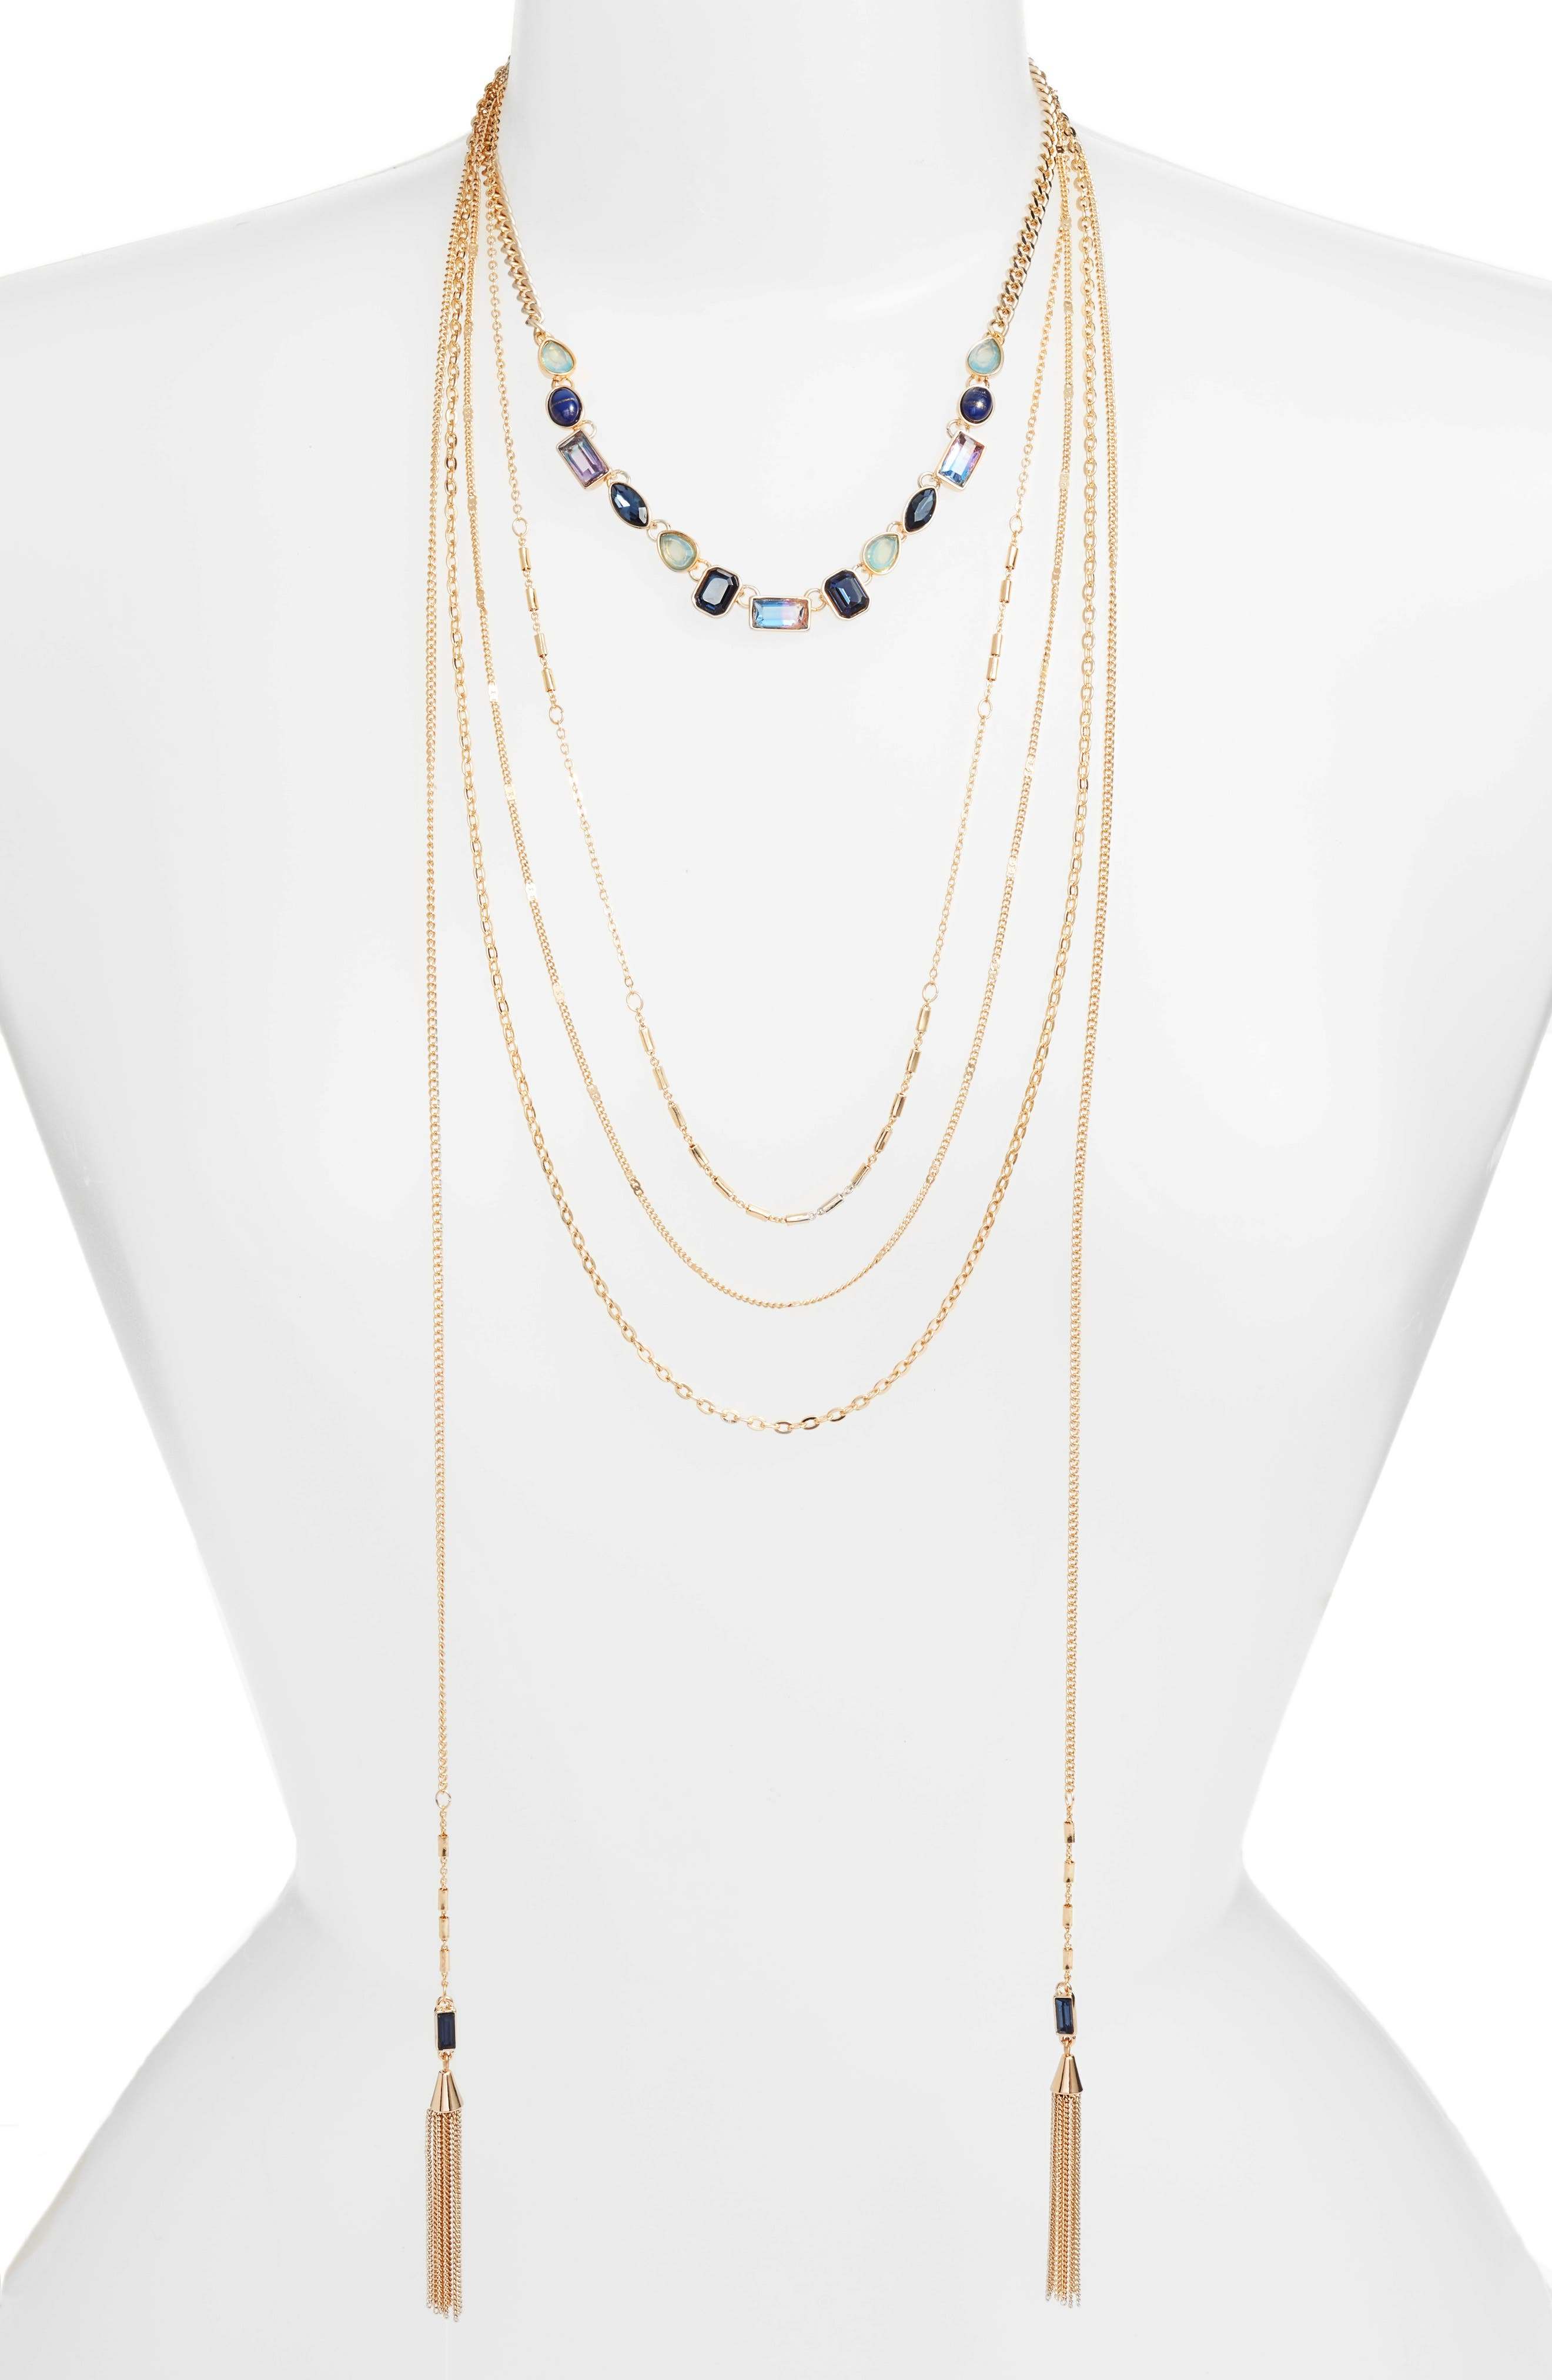 Crystal Multistrand Choker Necklace,                         Main,                         color, 420